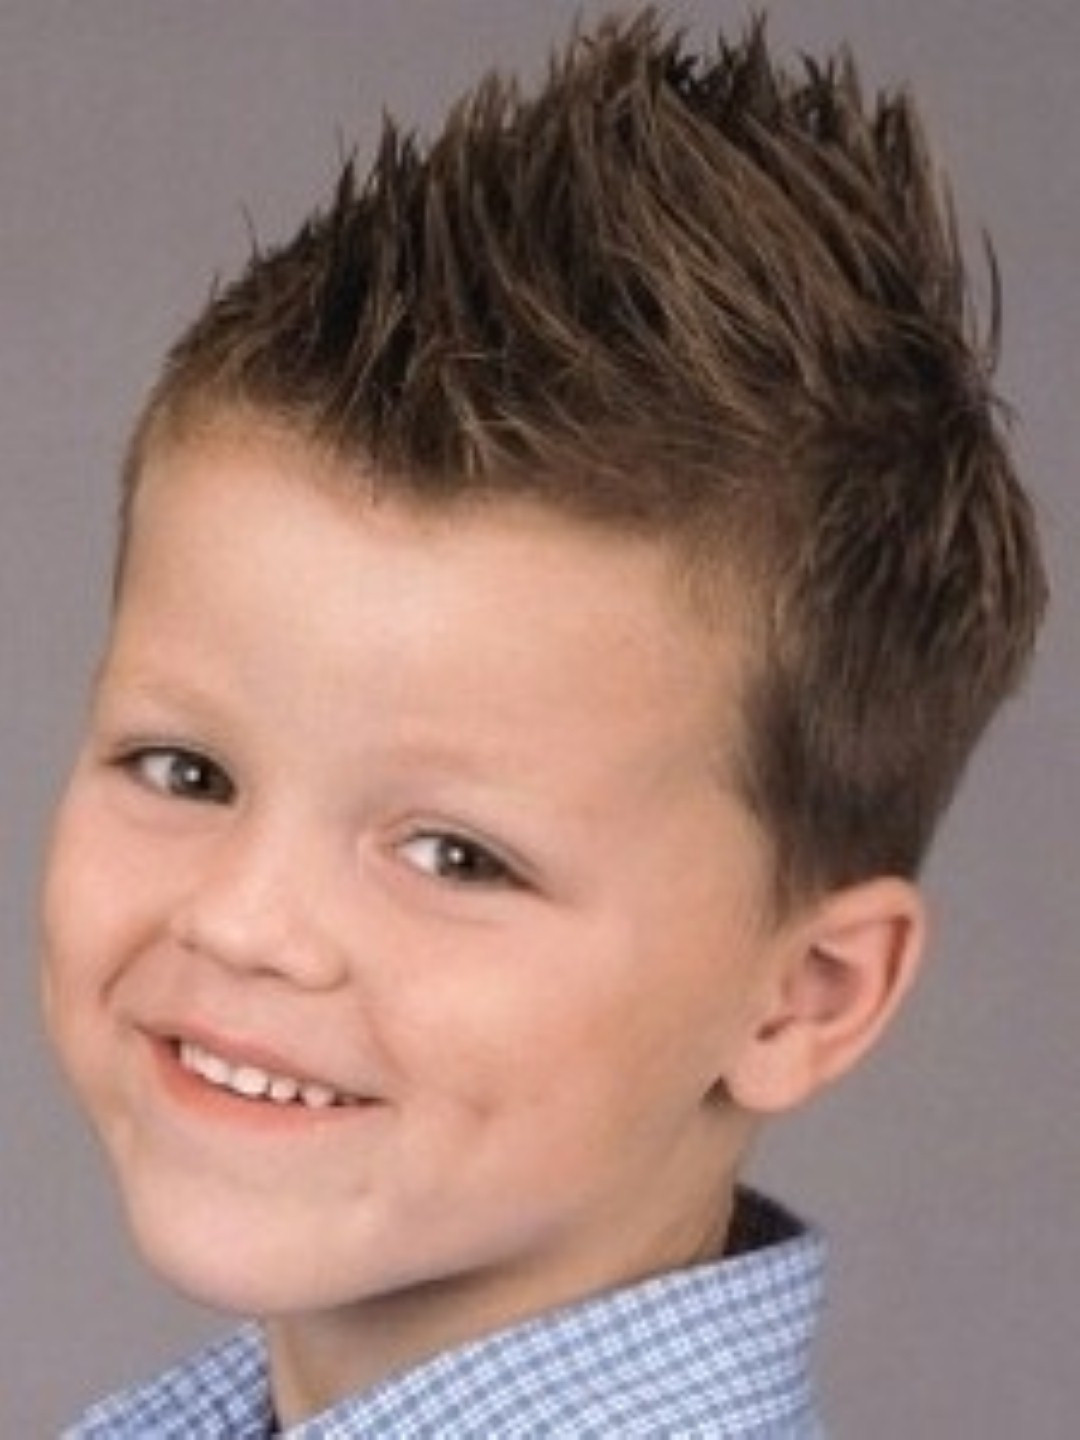 Best ideas about Haircuts Styles For Kids Boys . Save or Pin 30 Cool Hairstyles Ideas for Kids MagMent Now.